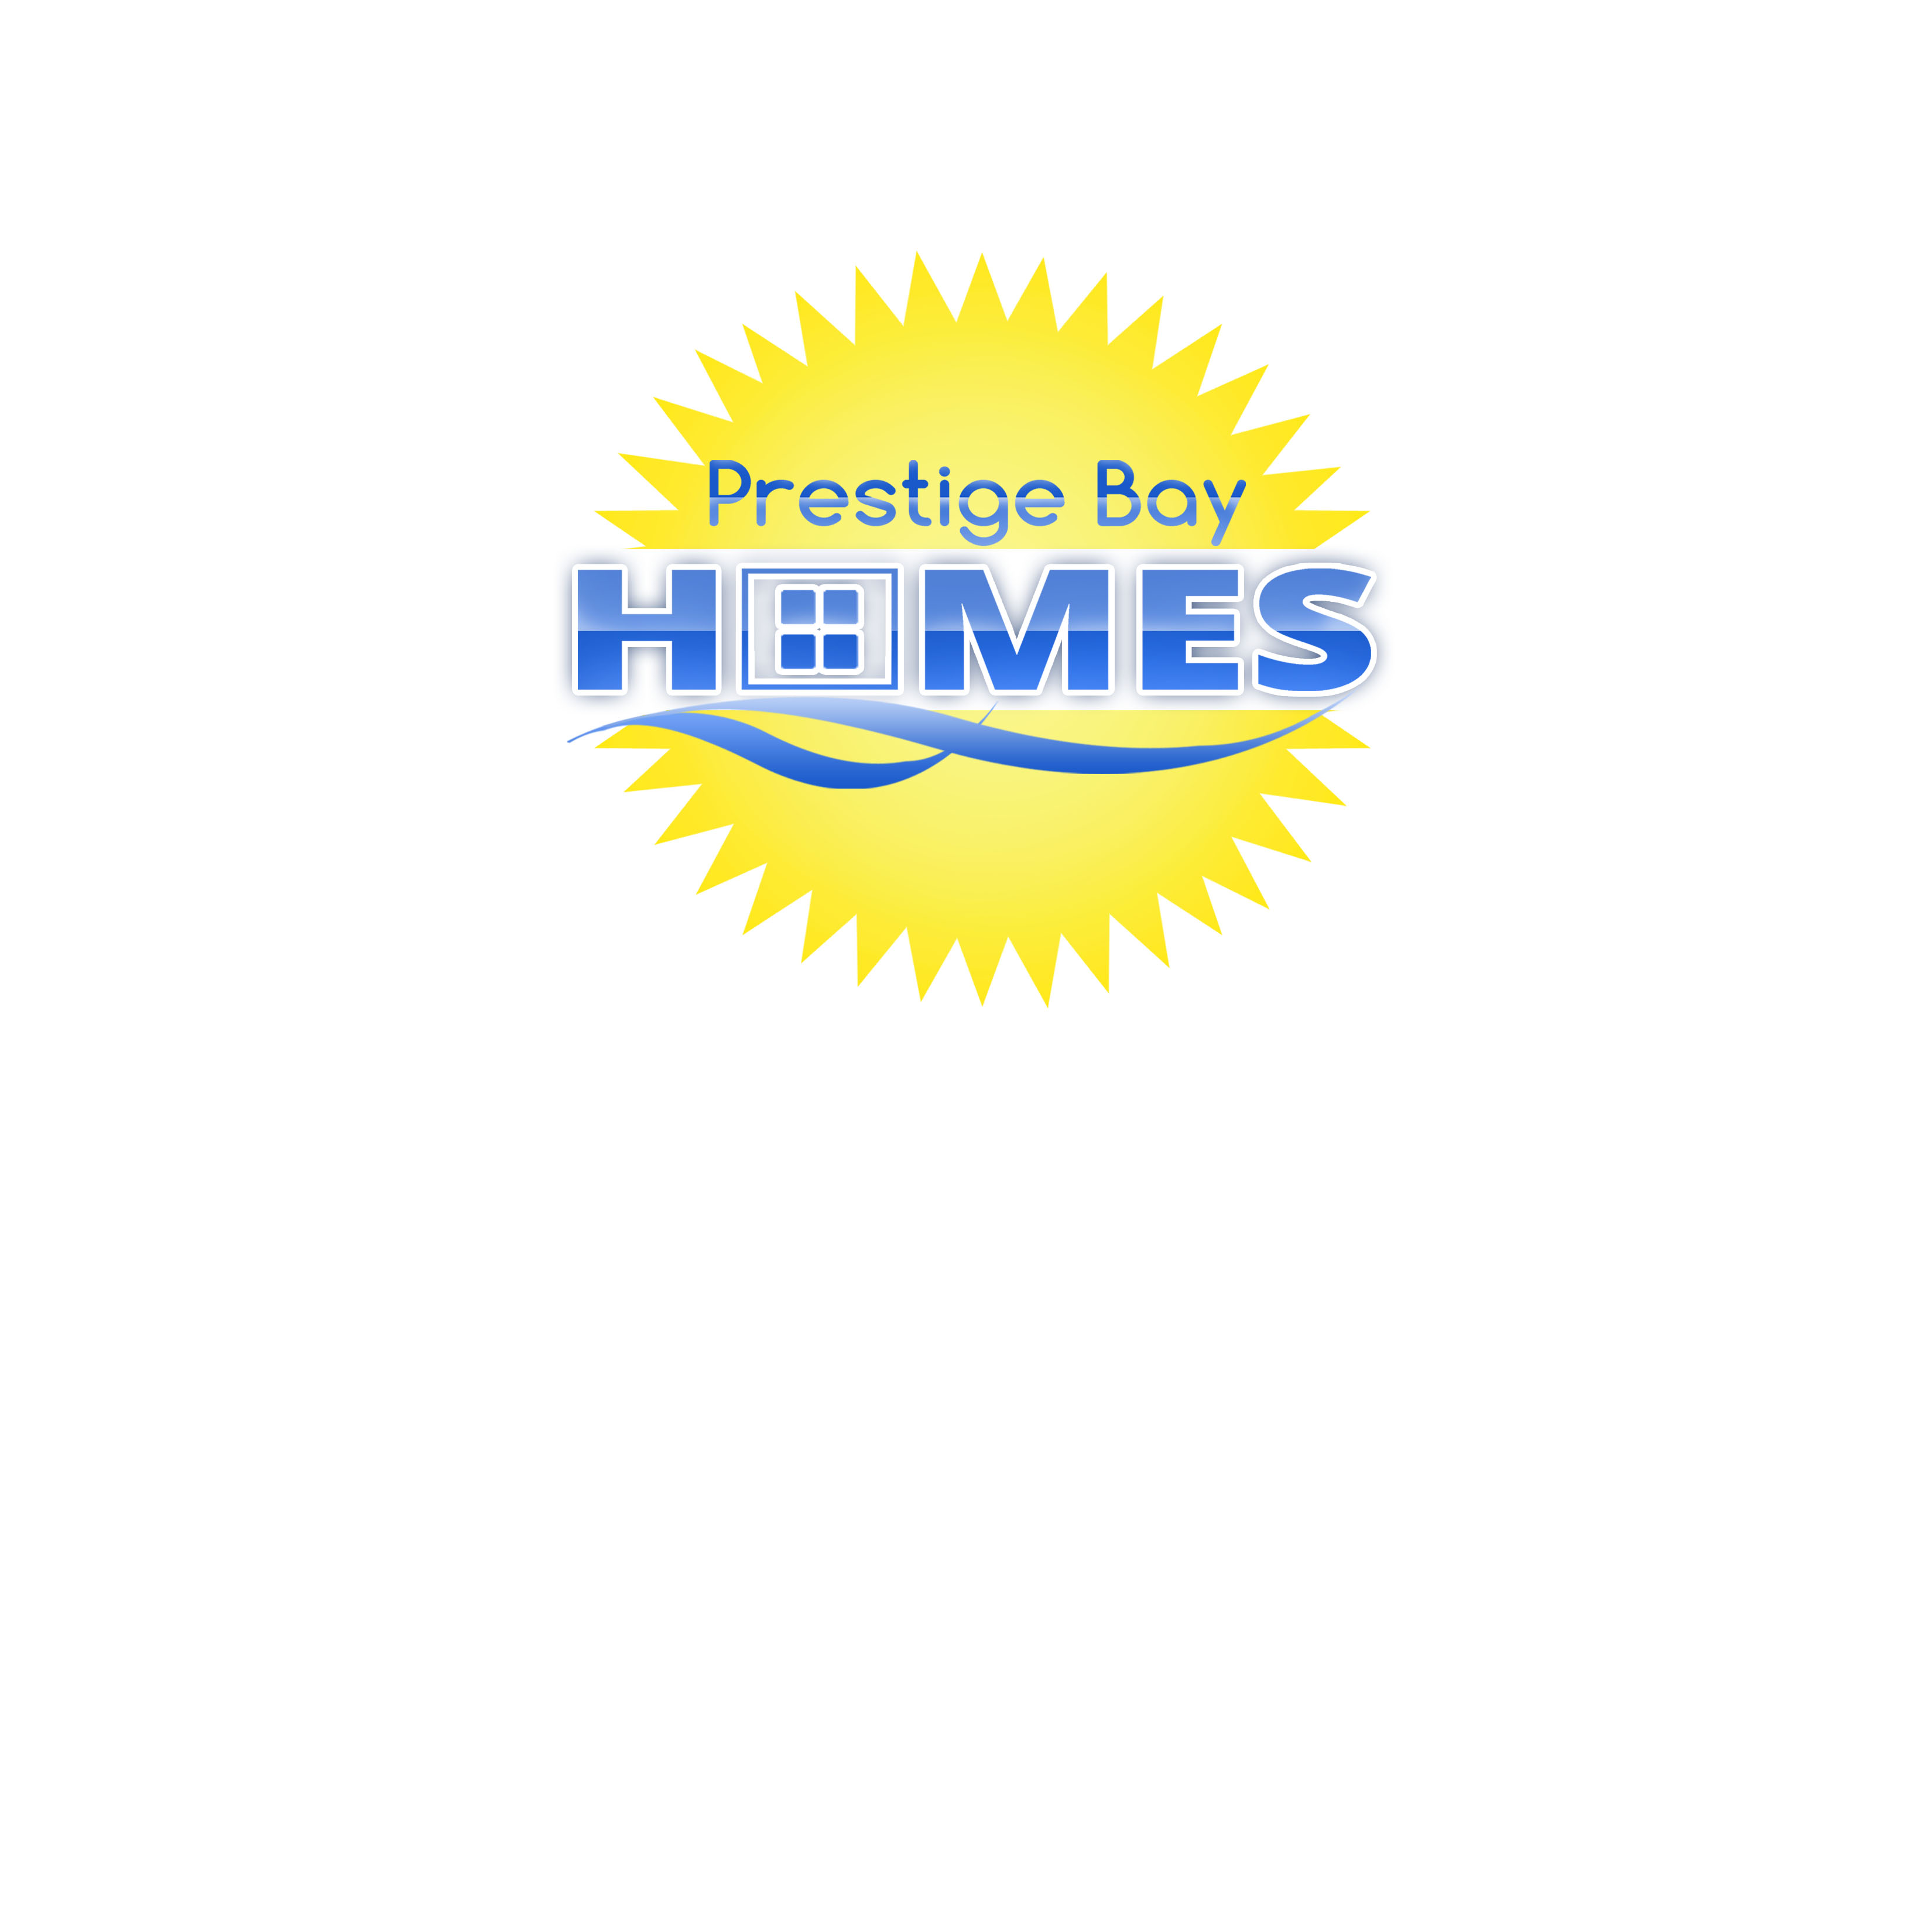 Logo Design by Allan Esclamado - Entry No. 55 in the Logo Design Contest Imaginative Logo Design for Prestige Bay Homes.